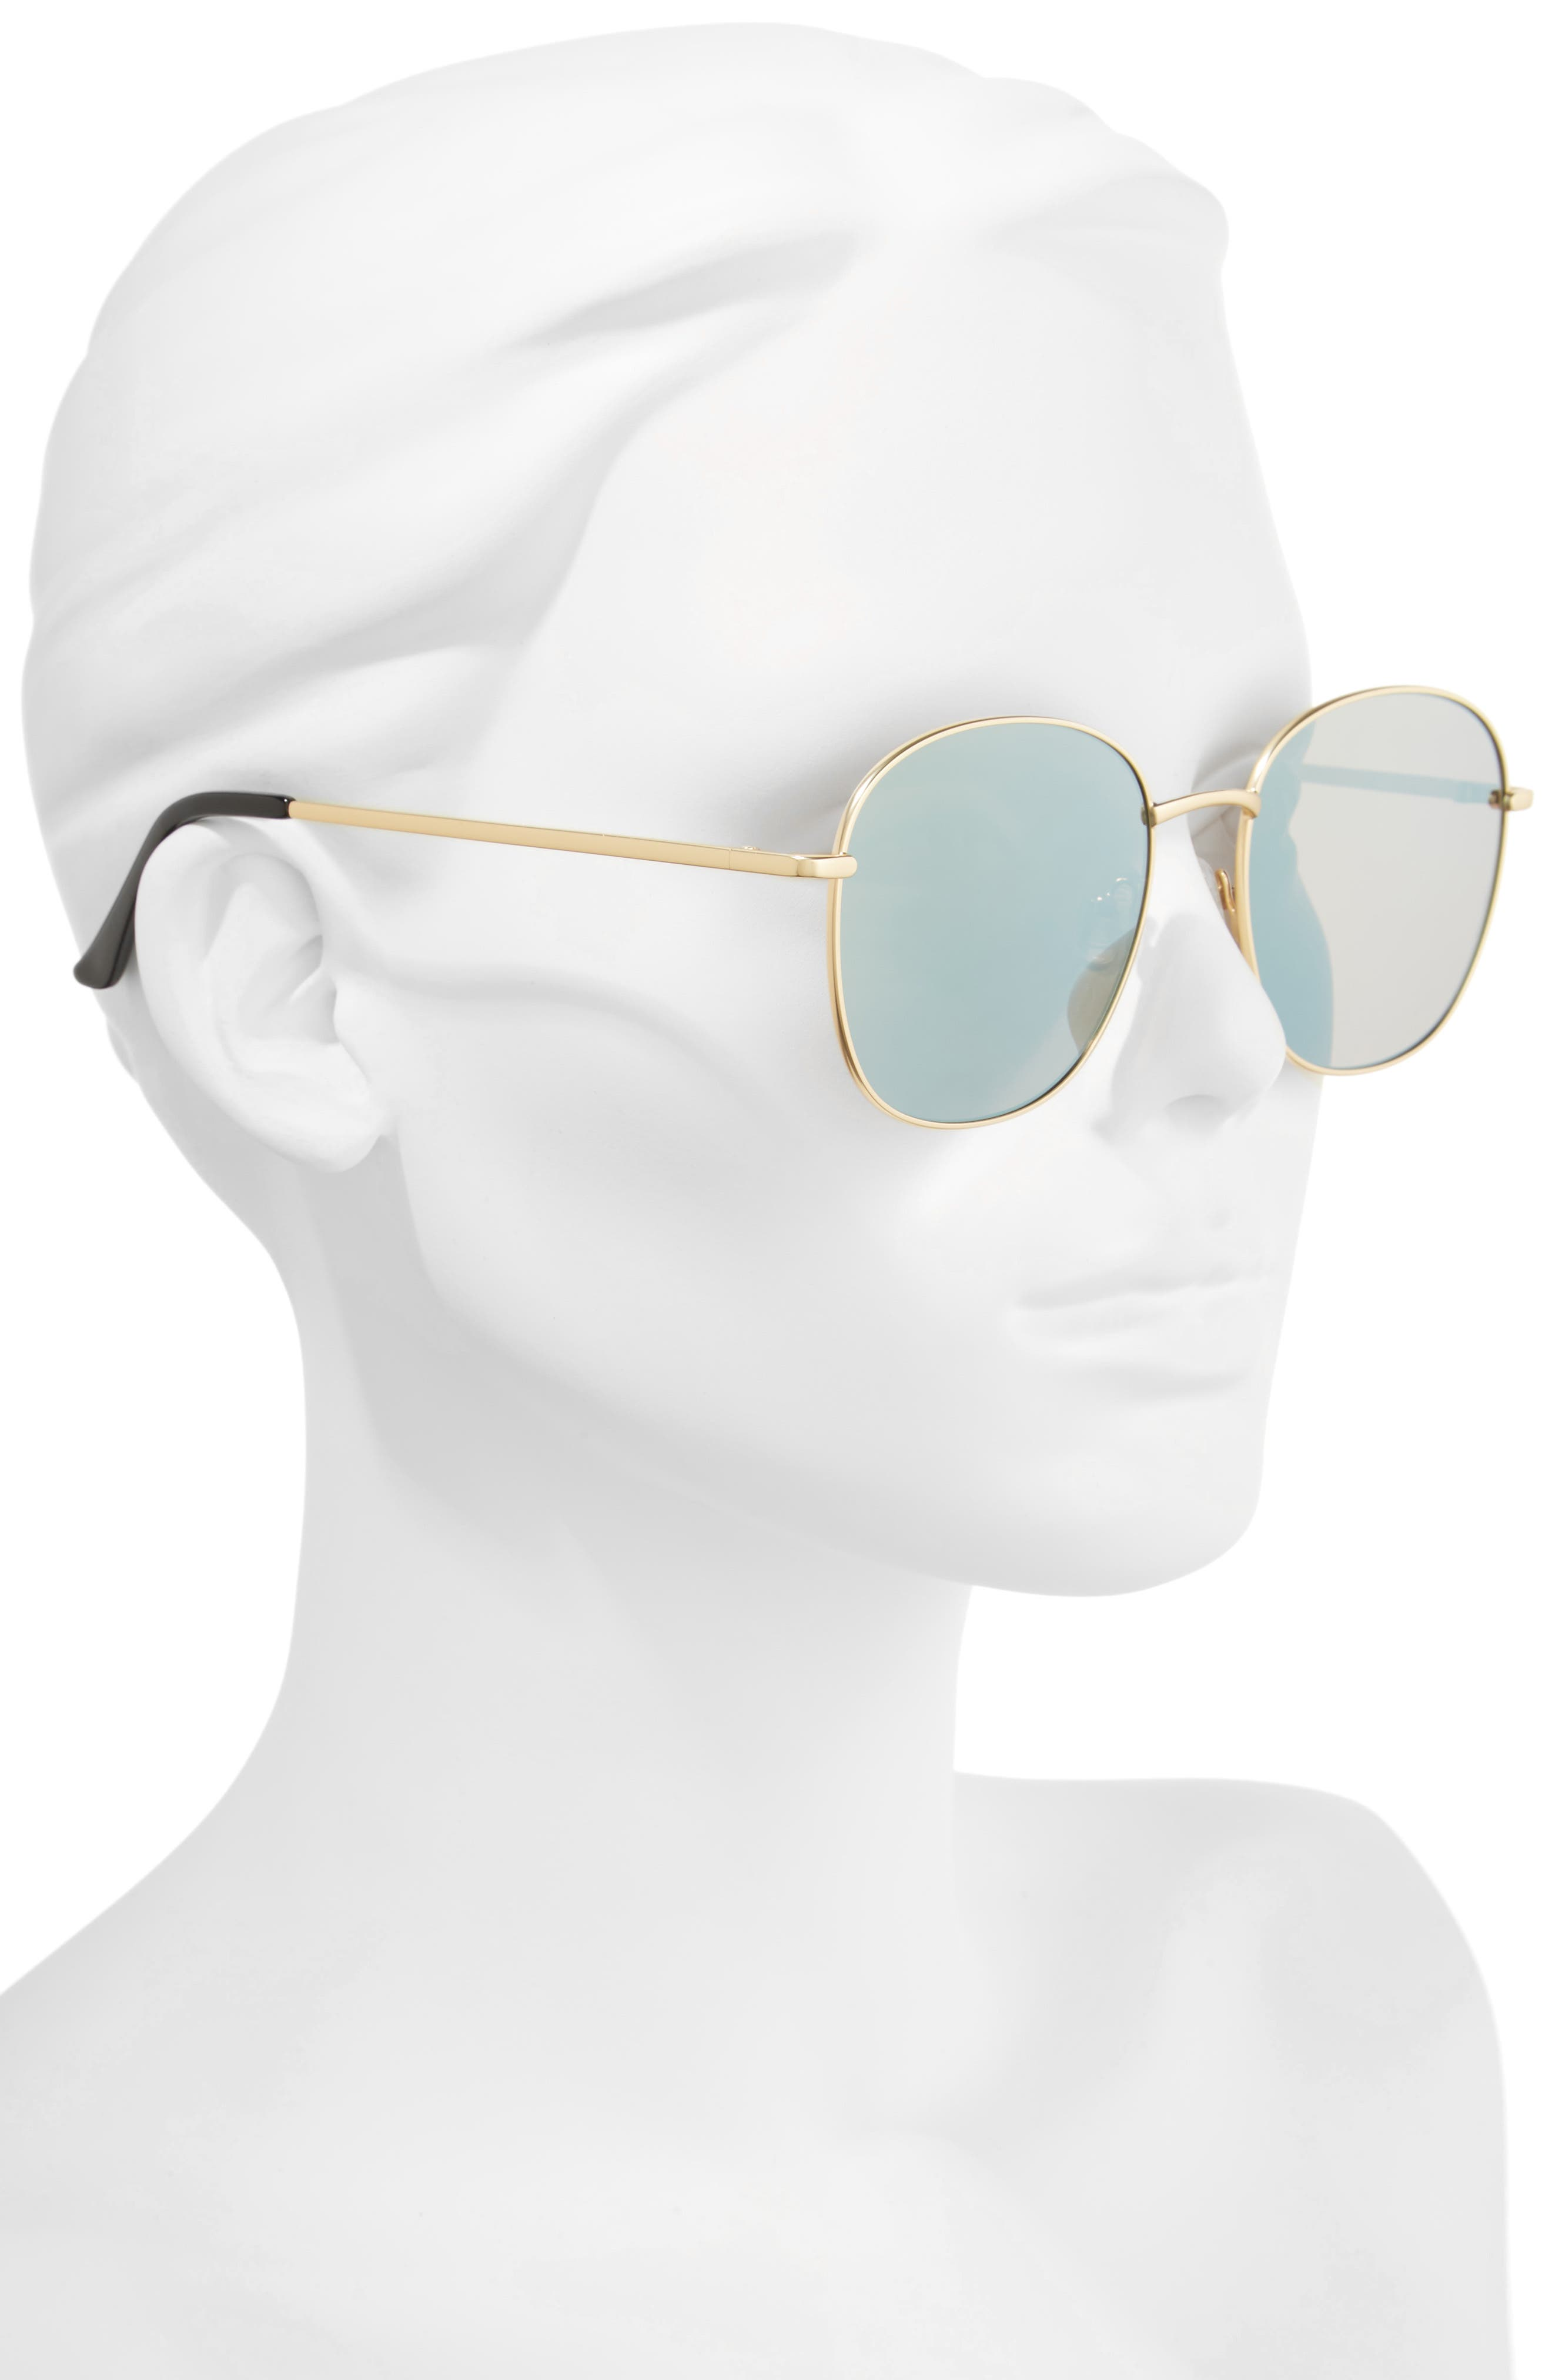 Jezabell 57mm Round Sunglasses,                             Alternate thumbnail 5, color,                             Gold/ Gold